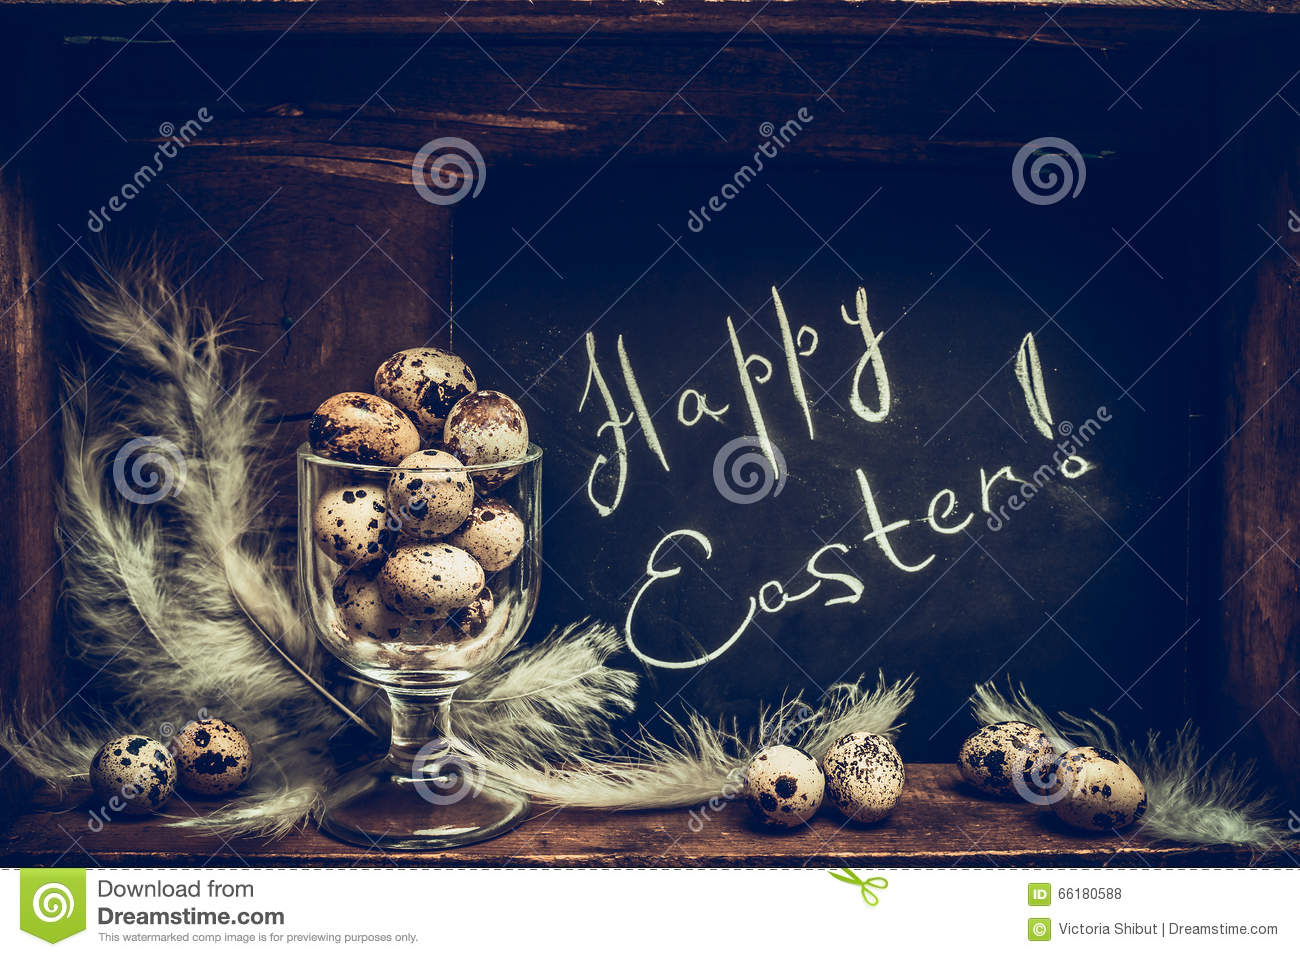 Download Happy Easter Greeting Card With Quail Eggs In Glass And Chalkboard Over Rustic Wooden Background